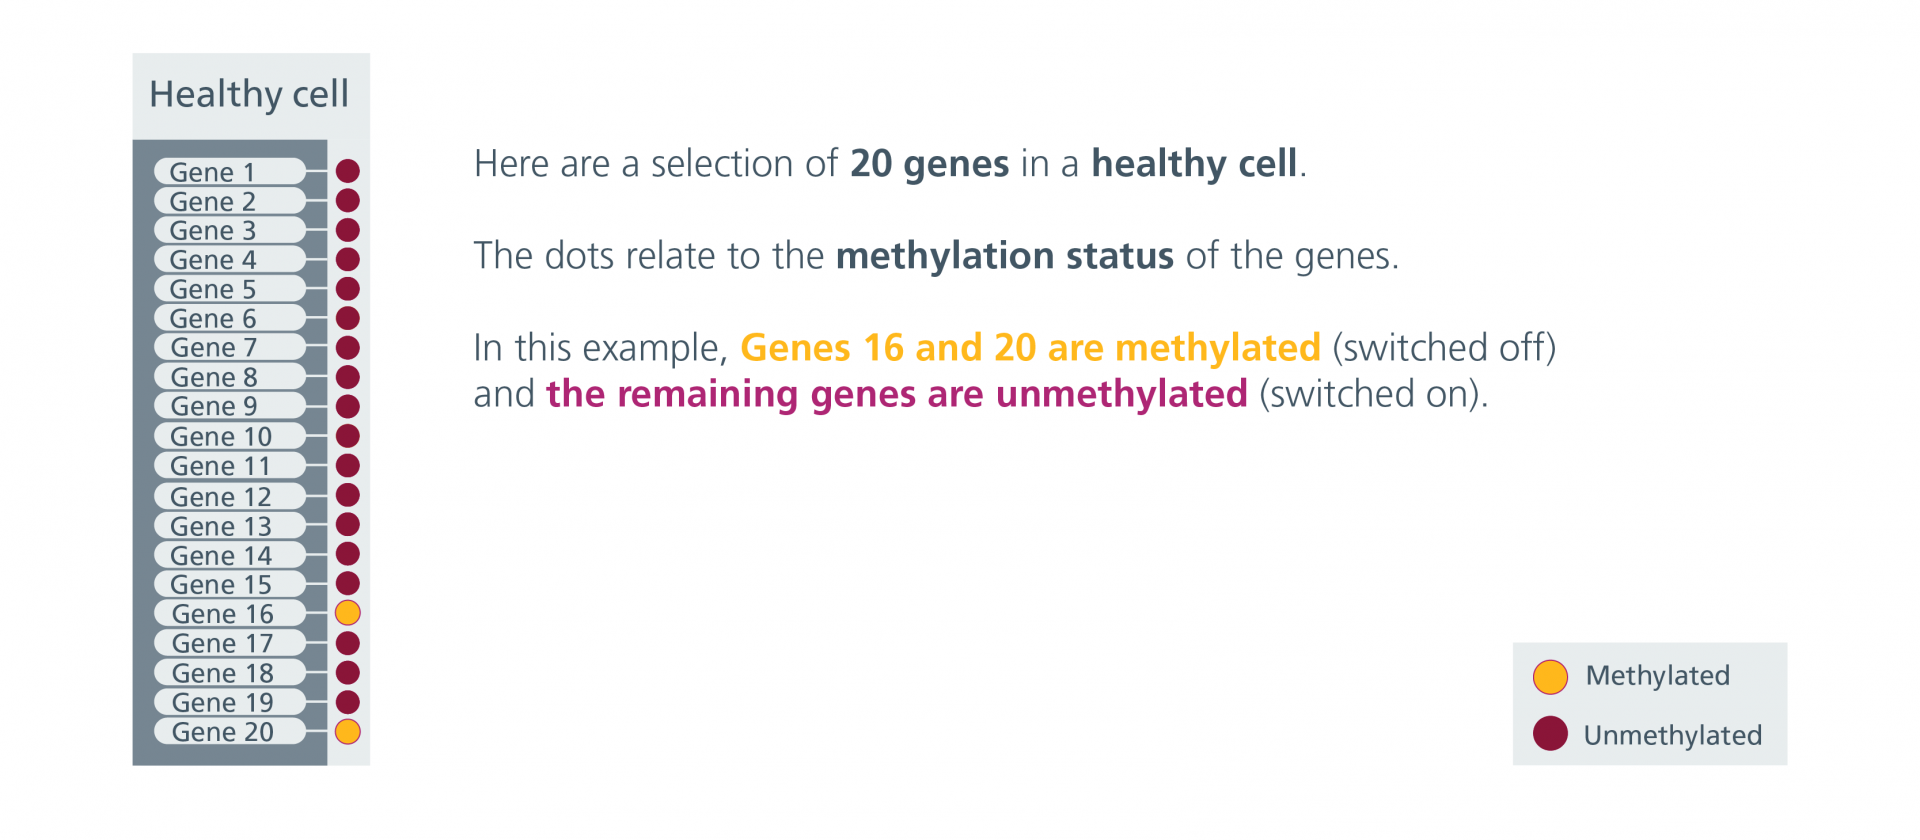 A selection of 20 genes in a healthy cell. Genes 16 and 20 are methylated (switched off) and the remaining genes are unmethylated (switched on).